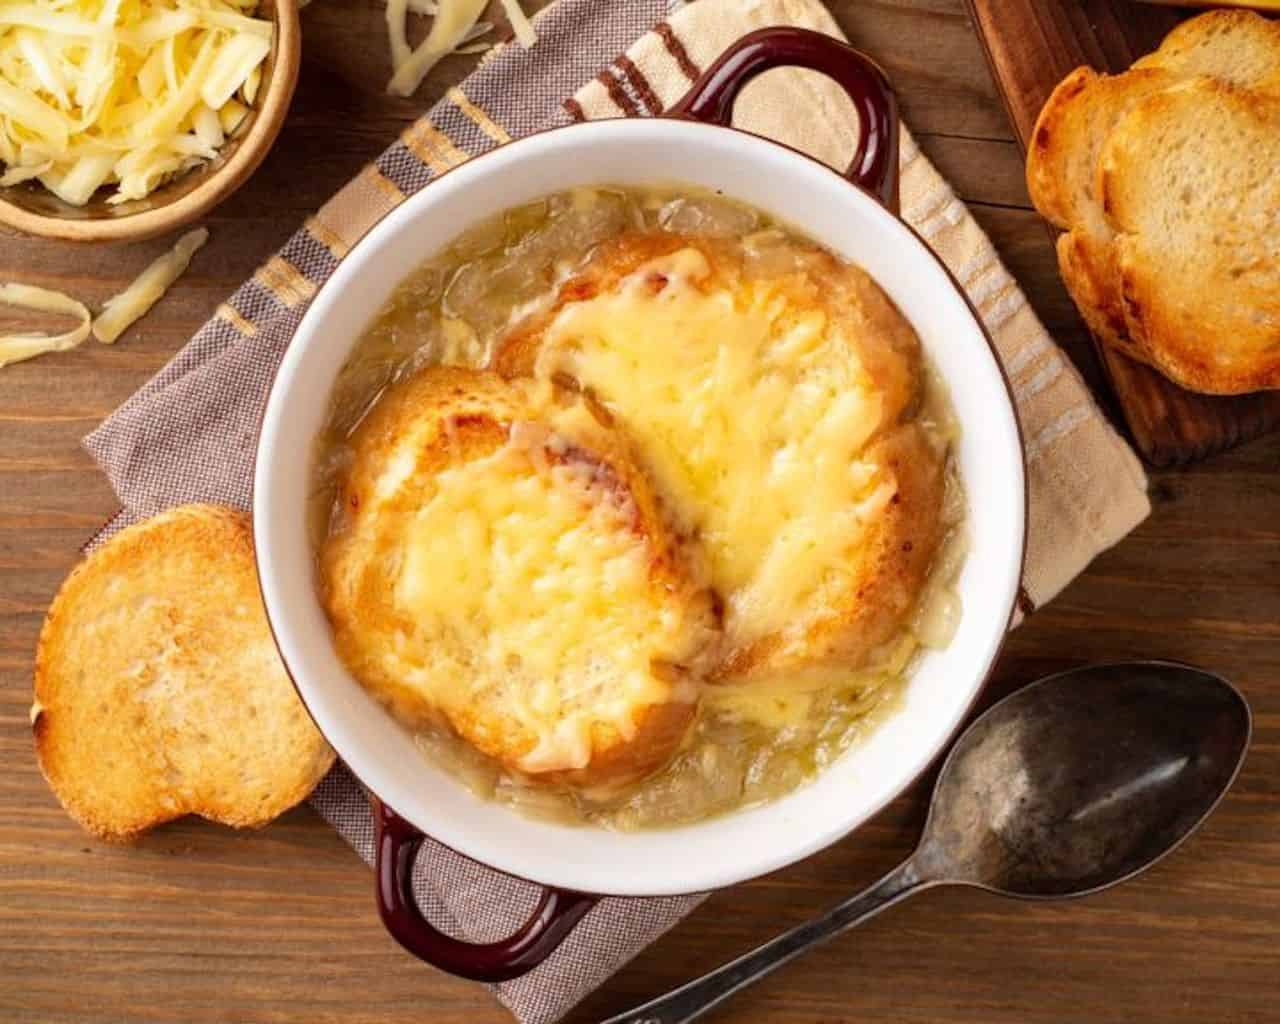 Traditional French Onion soup topped with melted cheese and bread in a white crock.